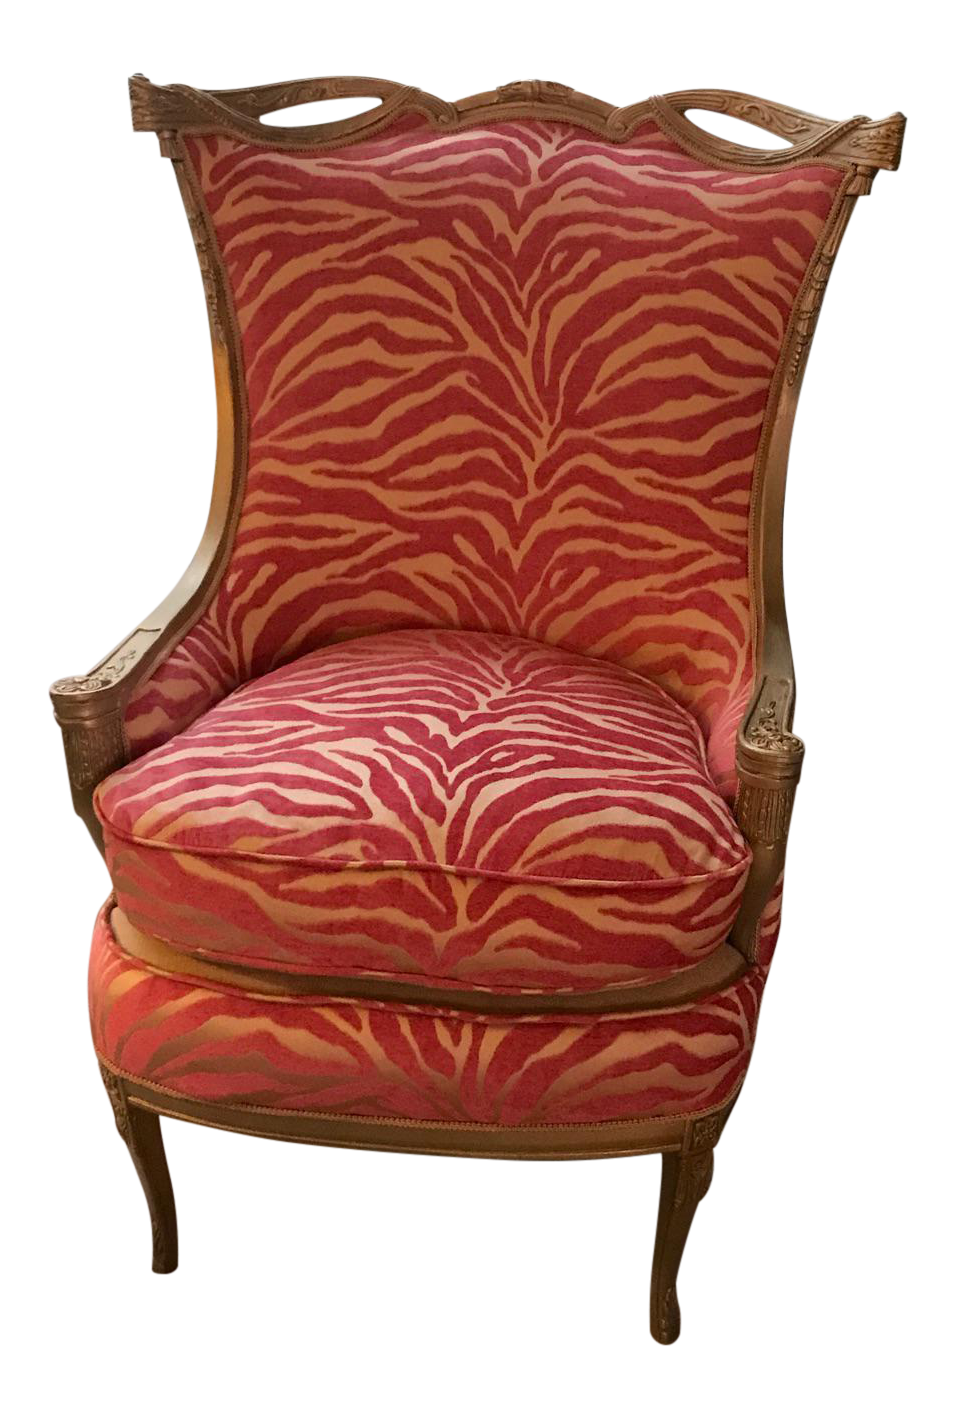 Etonnant Pink Zebra Print Upholstered Chair With Gold Frame